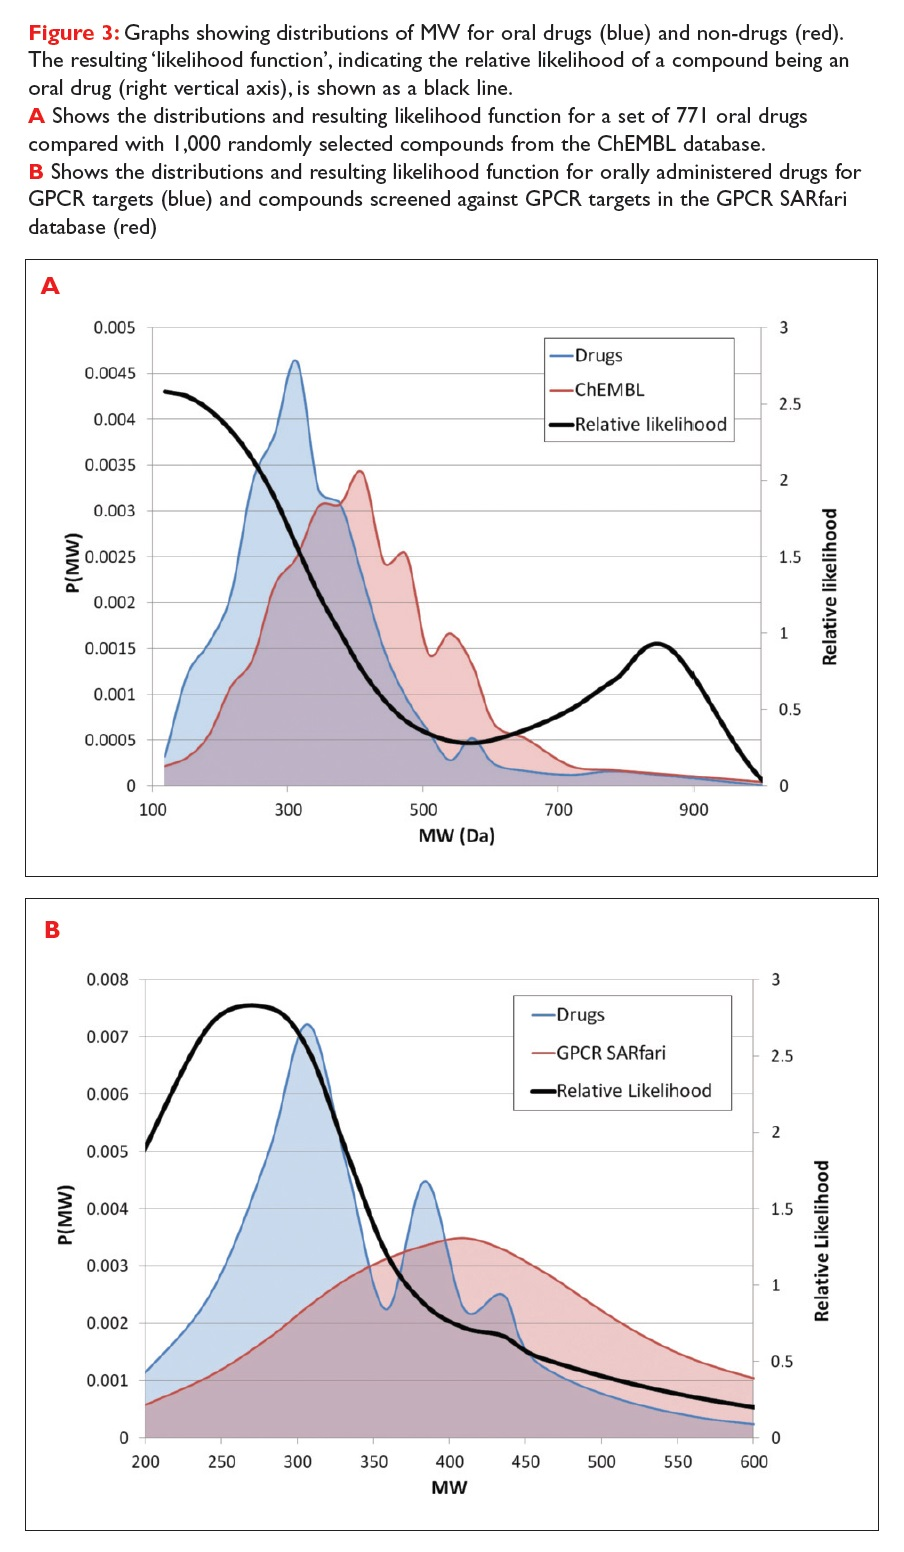 Figure 3 Graphs showing distributions of MW for oral drugs and non-drugs